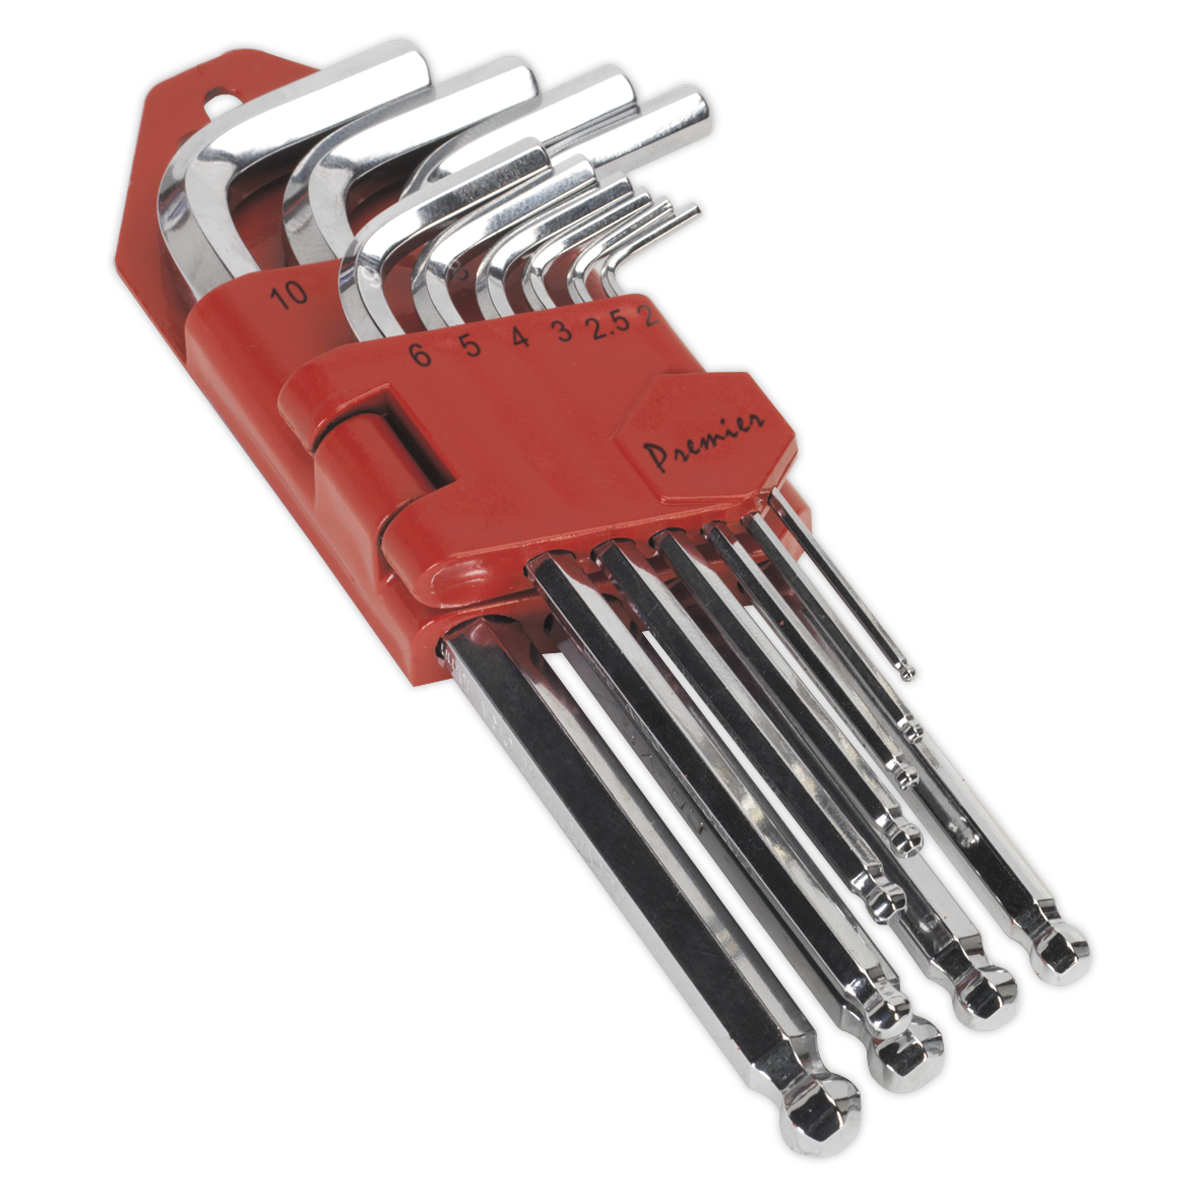 Ball-End Hex Key Set 10pc Long Fully Polished Metric